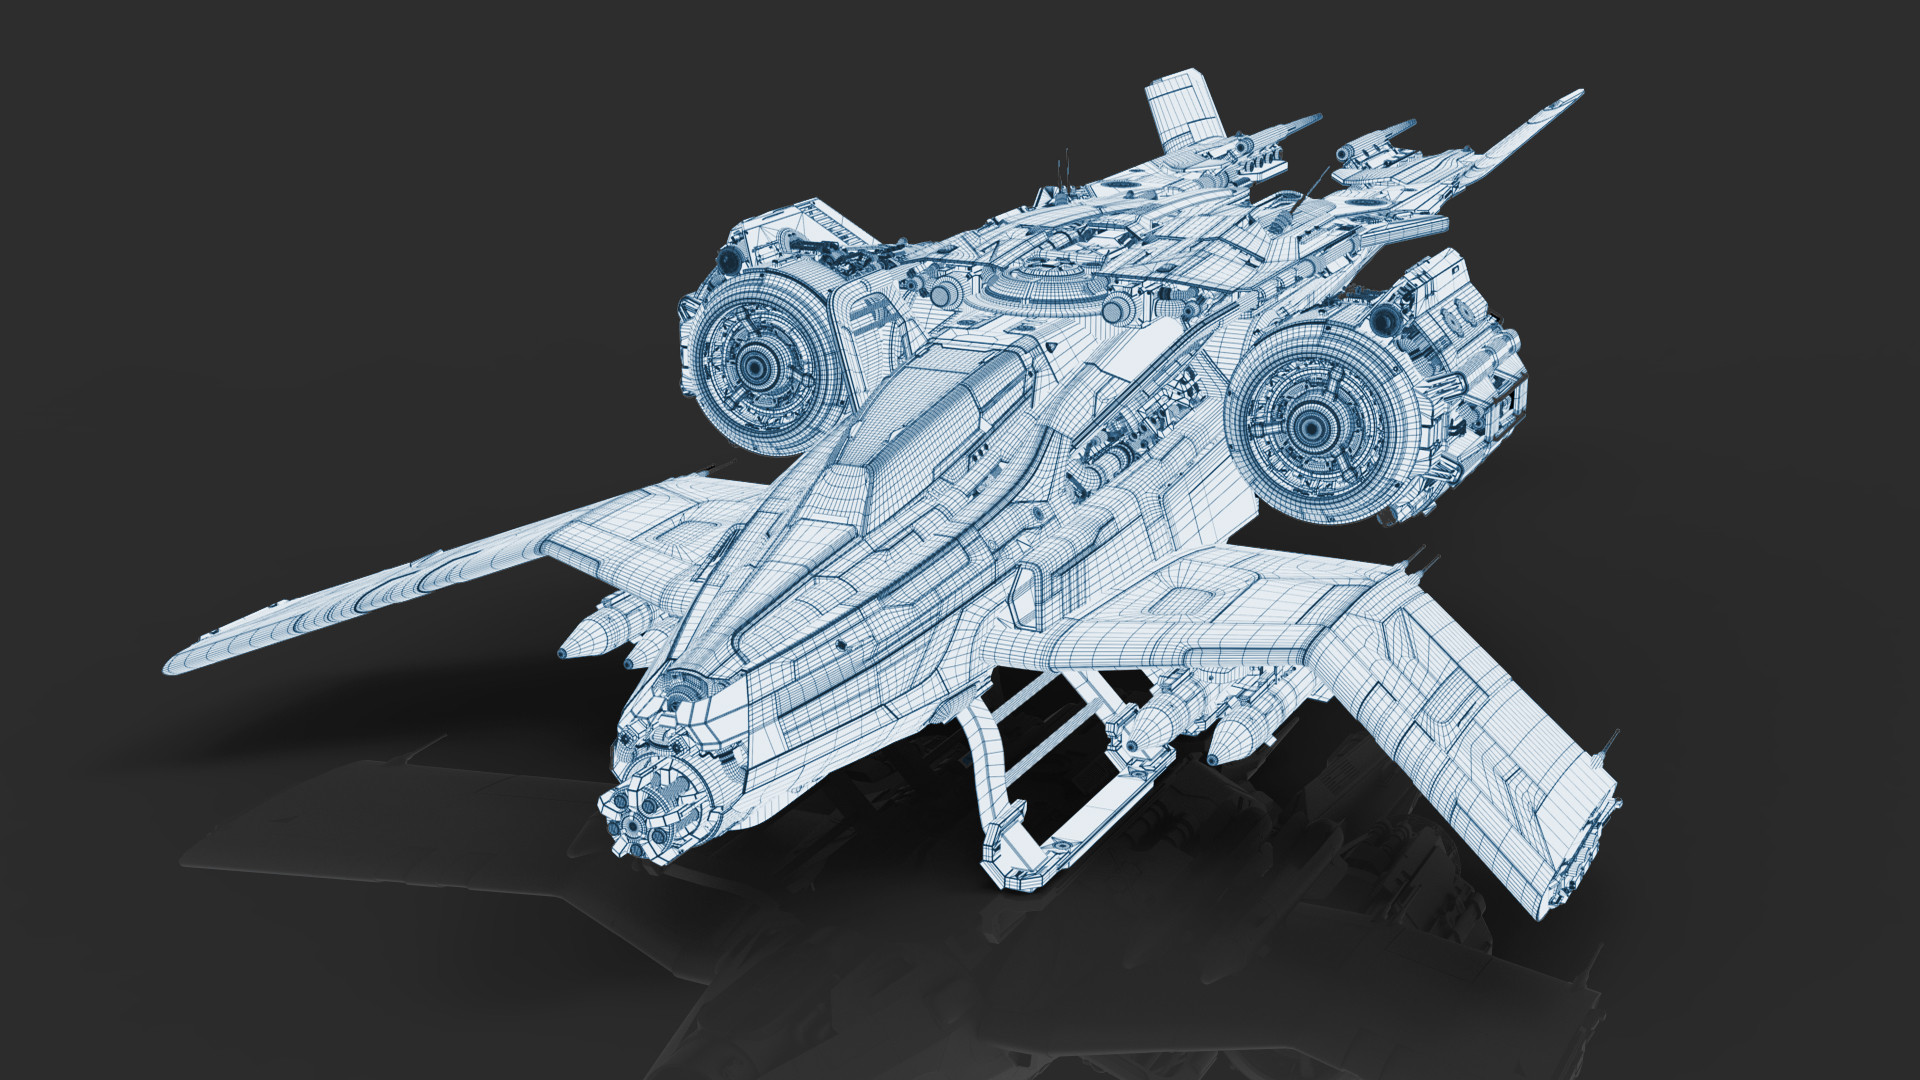 ArtStation - Wireframe and Clay Renders, Andrew Hodgson